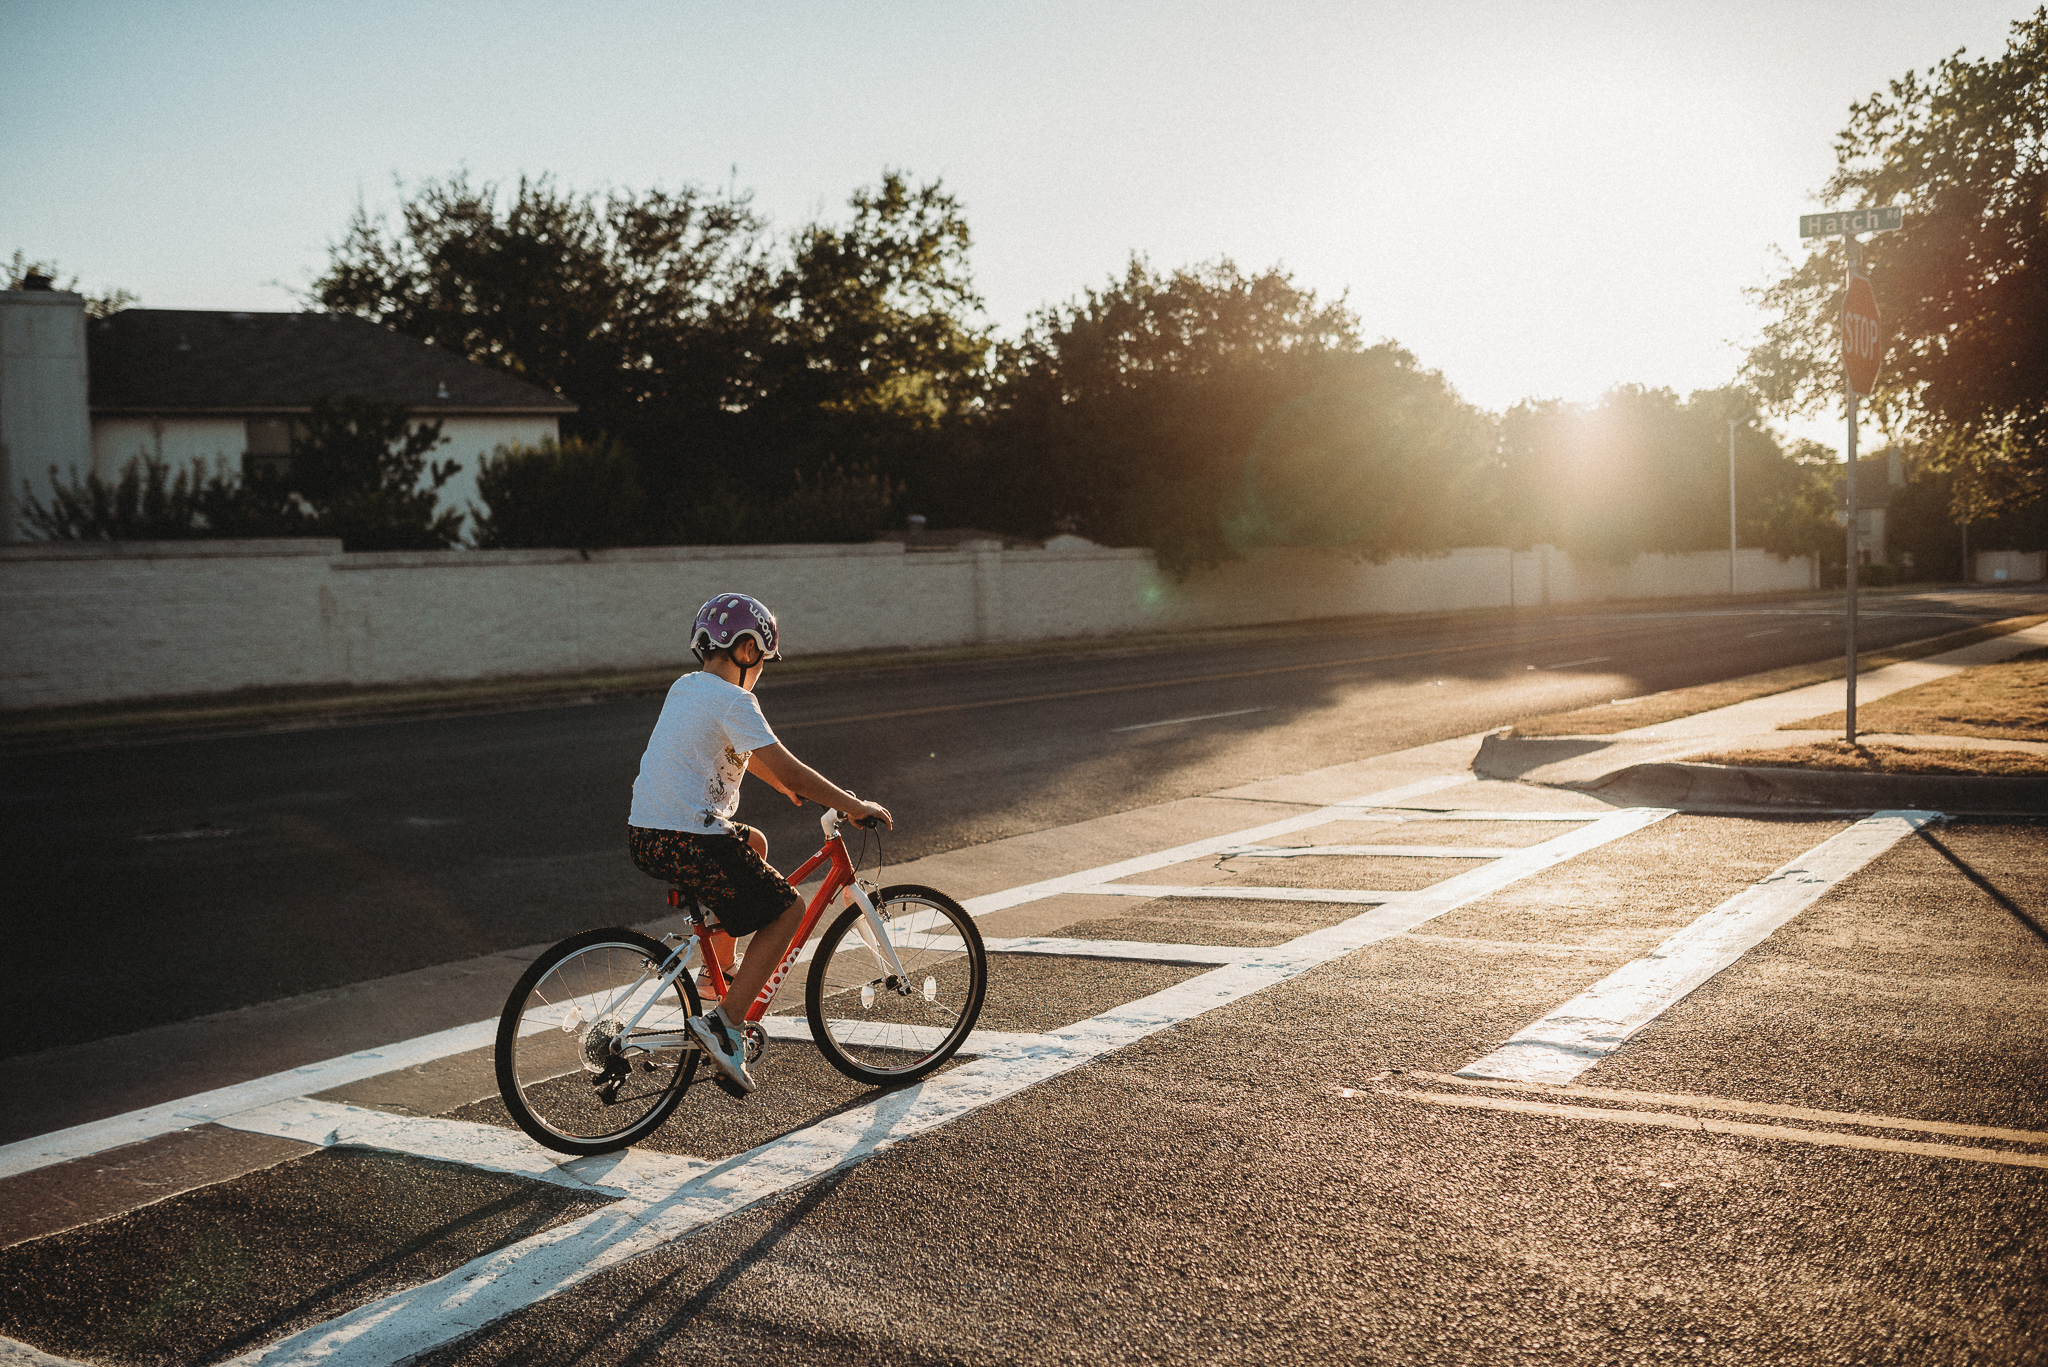 bike riding at sunset austin texas.jpg